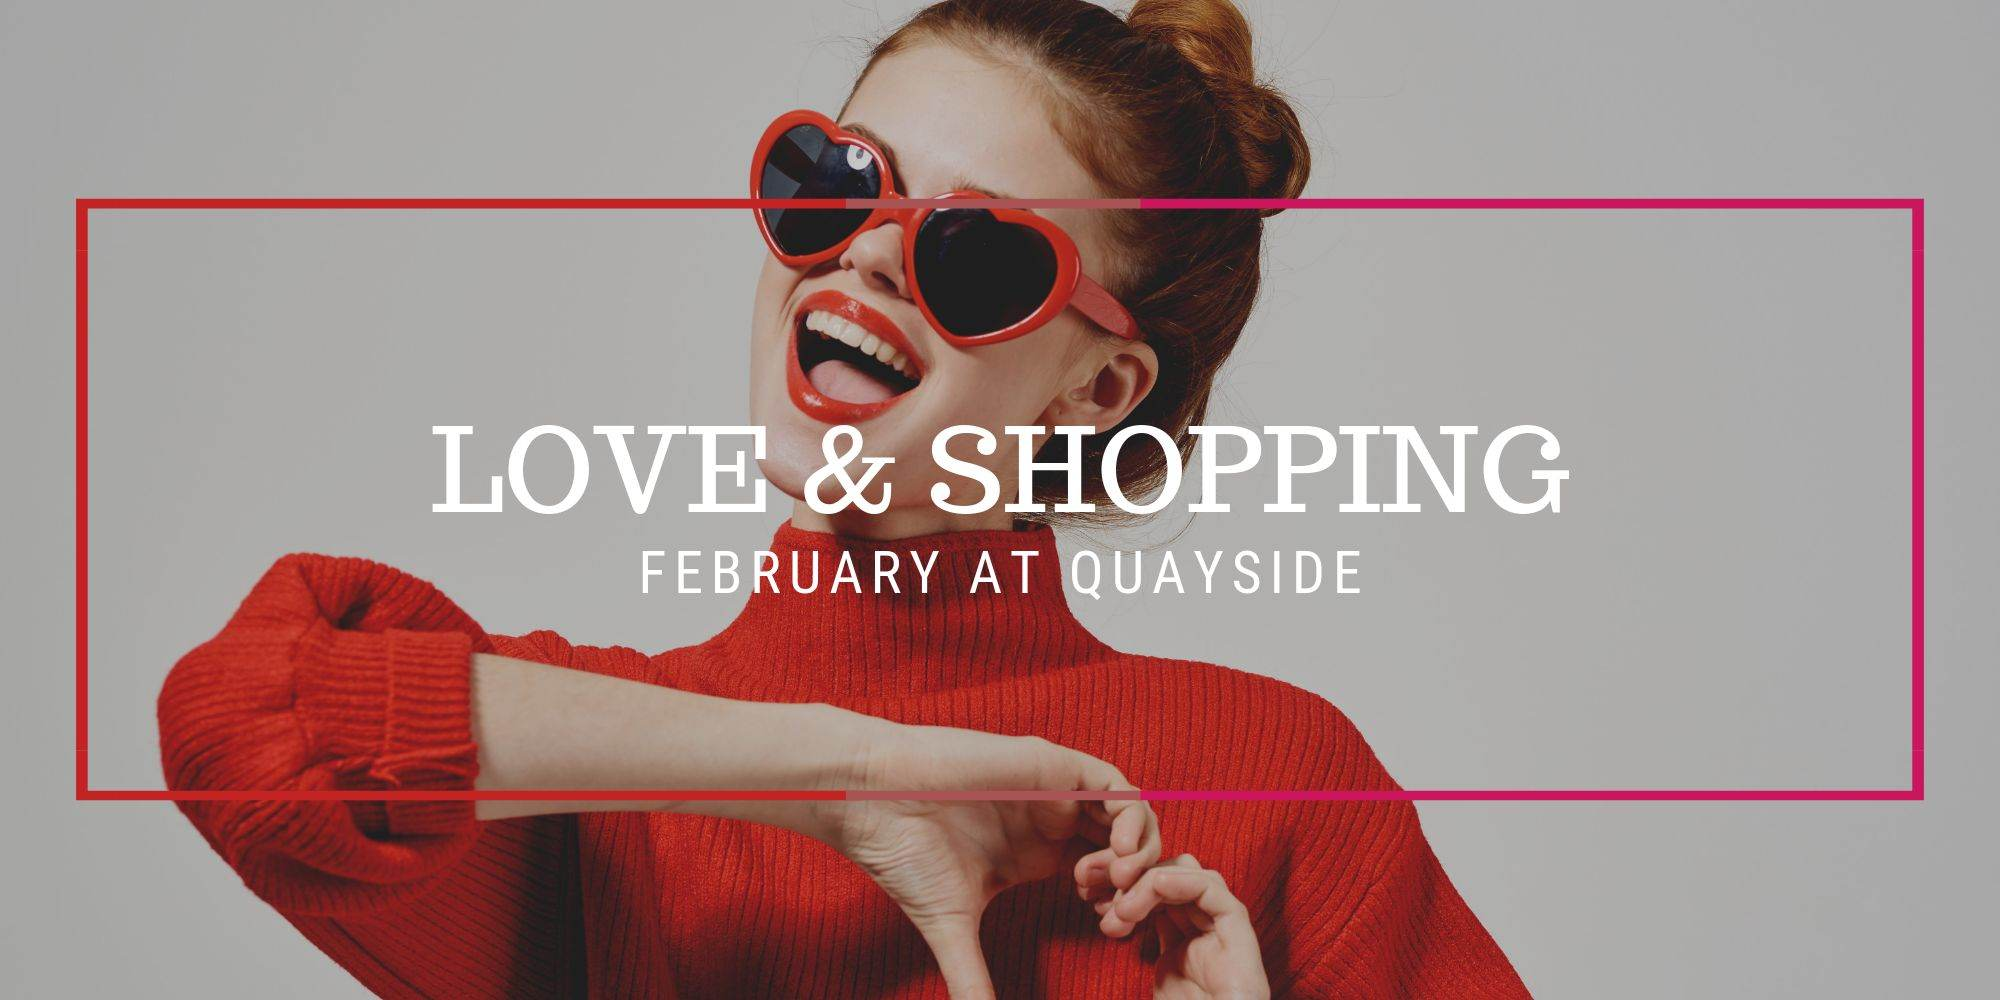 Love and shopping